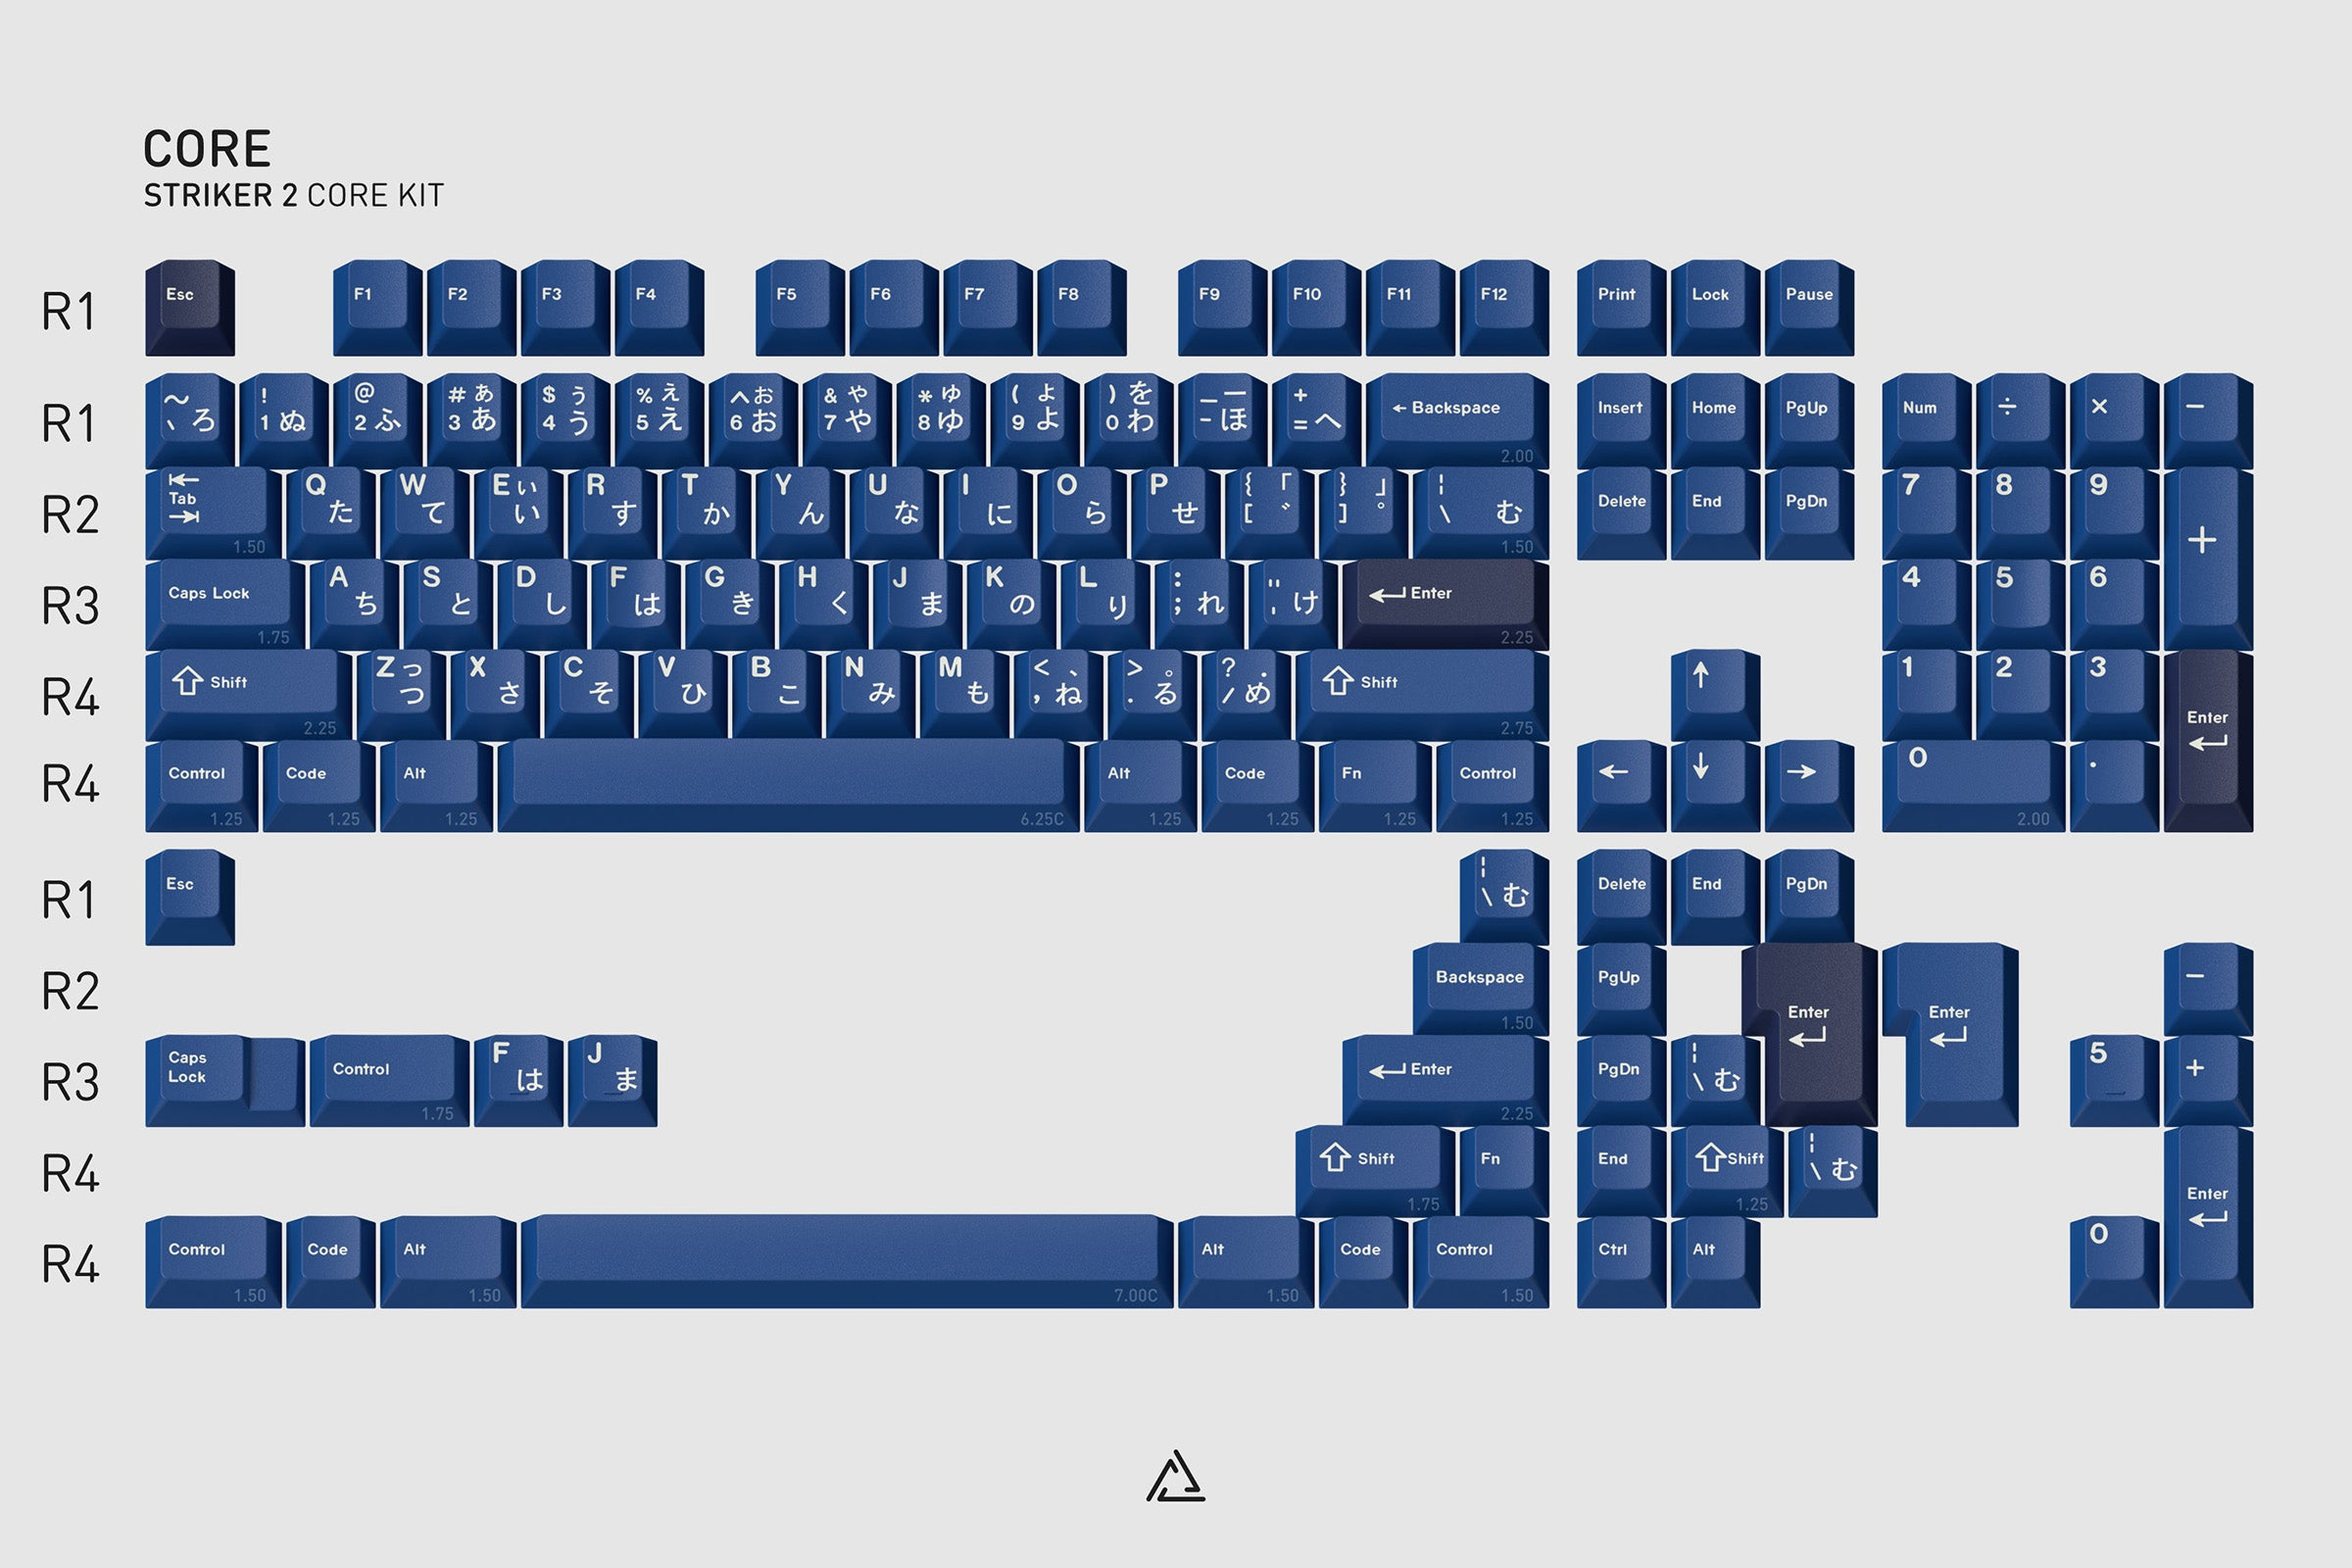 GMK Striker 2 Core Kit: The Core kit is your starting point and provides basic layout coverage for 60%, 65%, 75%, TKL, 96-key, 1800, and full-size layouts in both standard and winkeyless variants for both ANSI and ISO layouts, all of that while keeping in mind affordability.